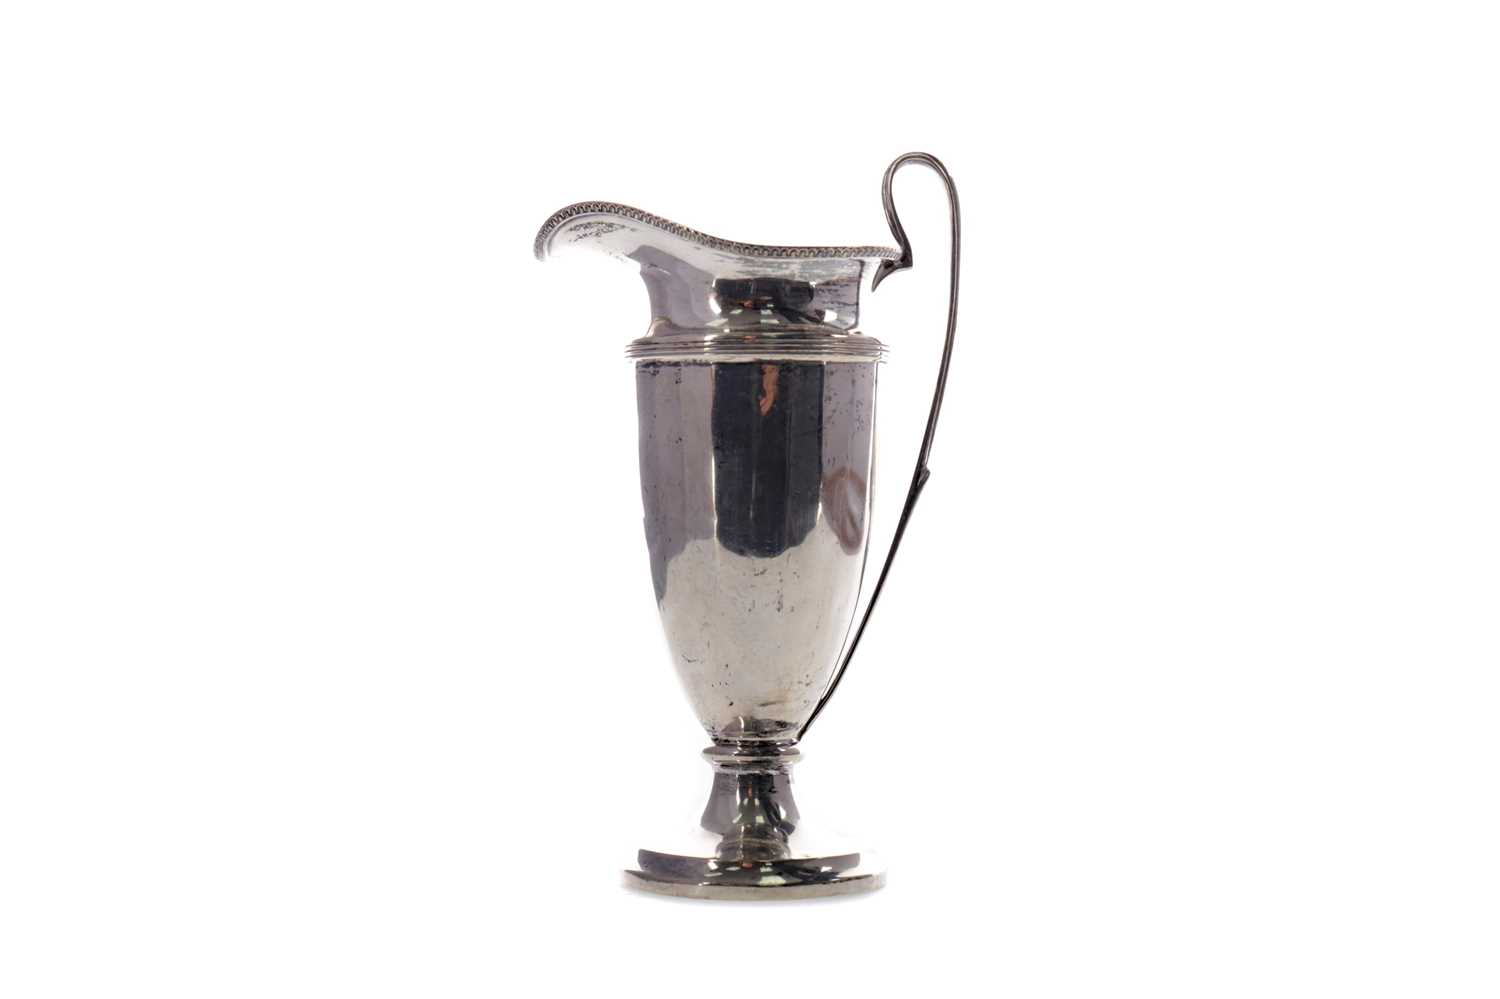 Lot 463 - A SILVER CREAM JUG